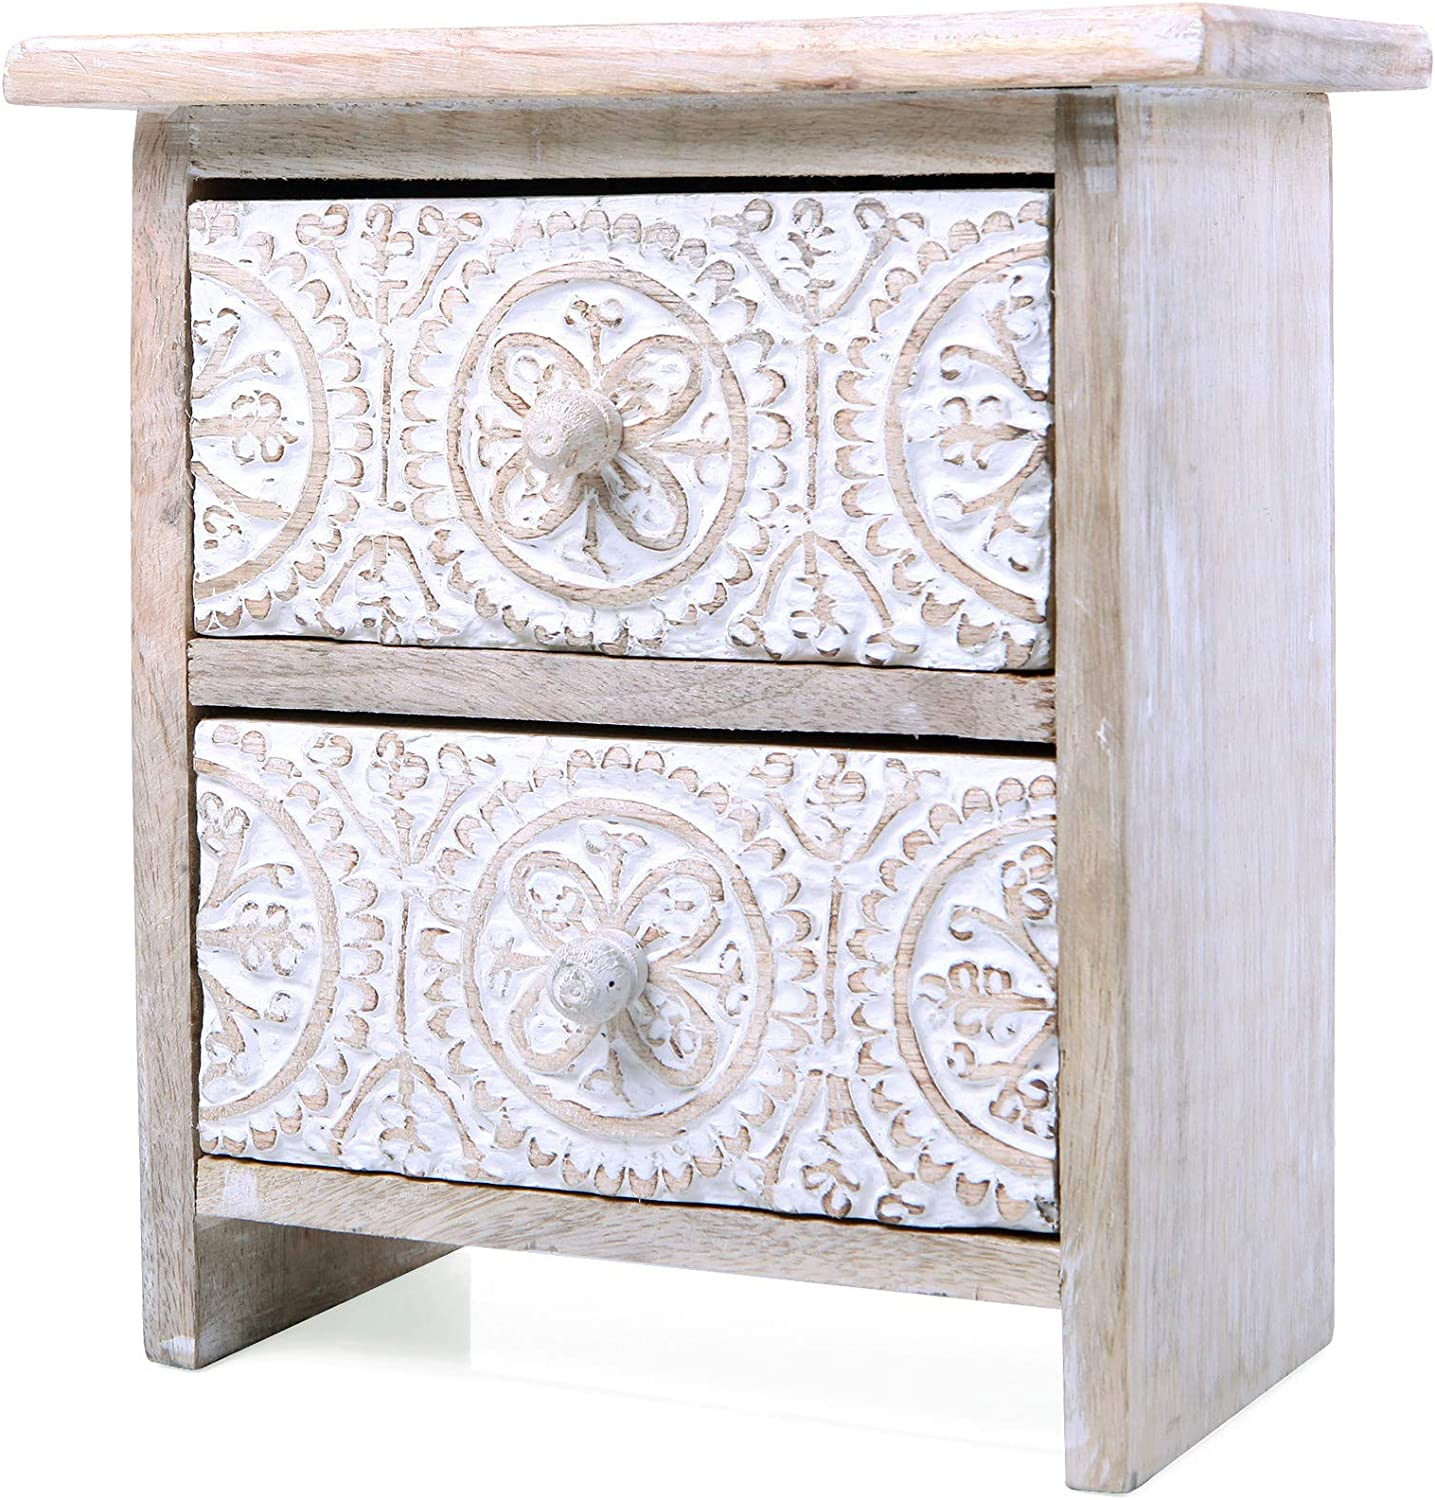 NIKKY HOME Hand Carved Desktop Drawer Storage Decorative Box, Bohemian Style Mango Wood Design with White Distressed Finish 7.87 x 8.07 x 4.33 inch